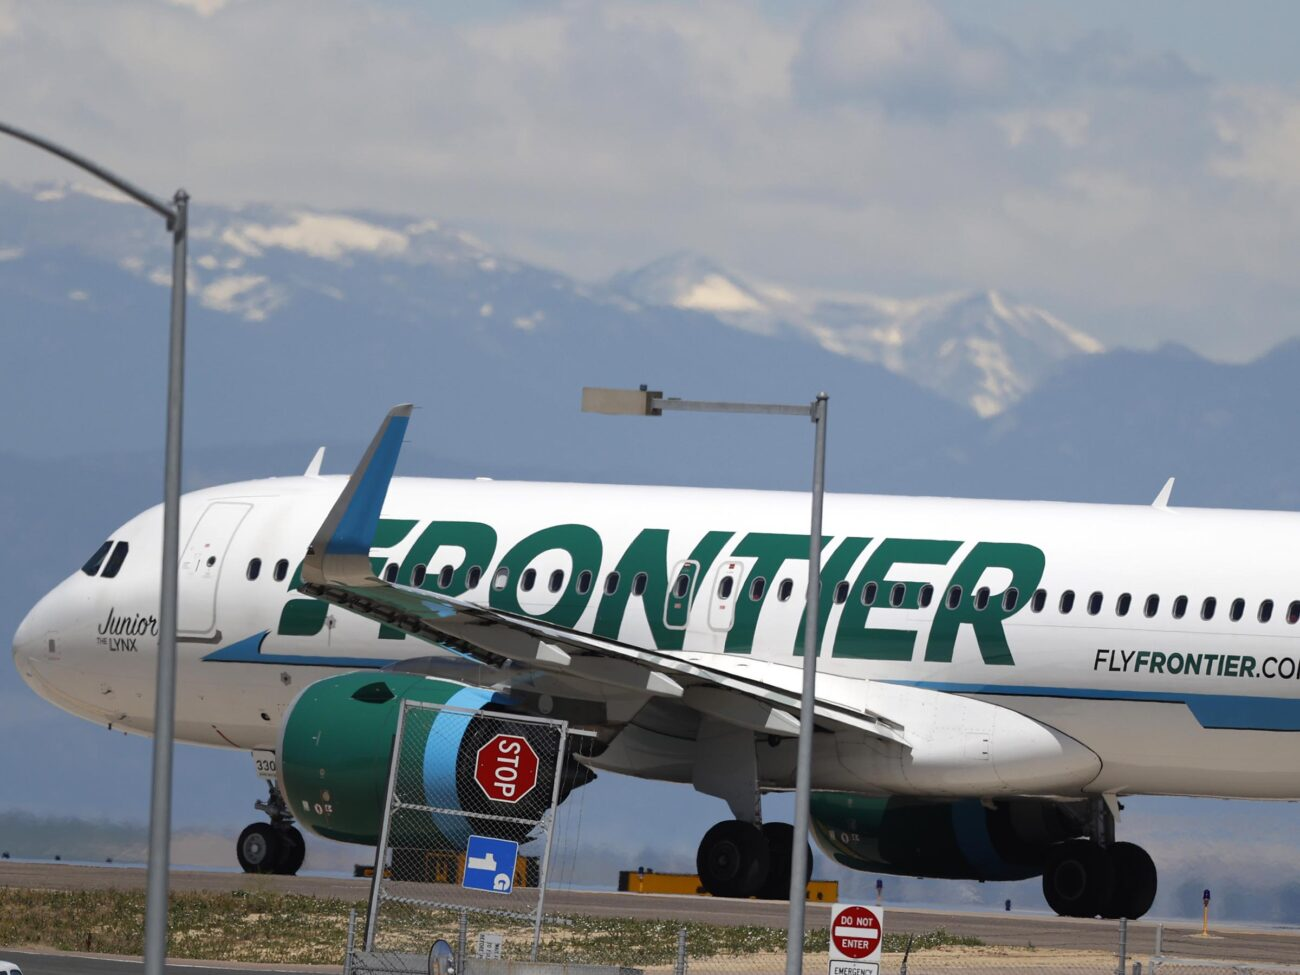 A Frontier Airlines passenger was duct-taped to his seat after allegedly molesting & assaulting the flight crew. Review the video of the shocking event!